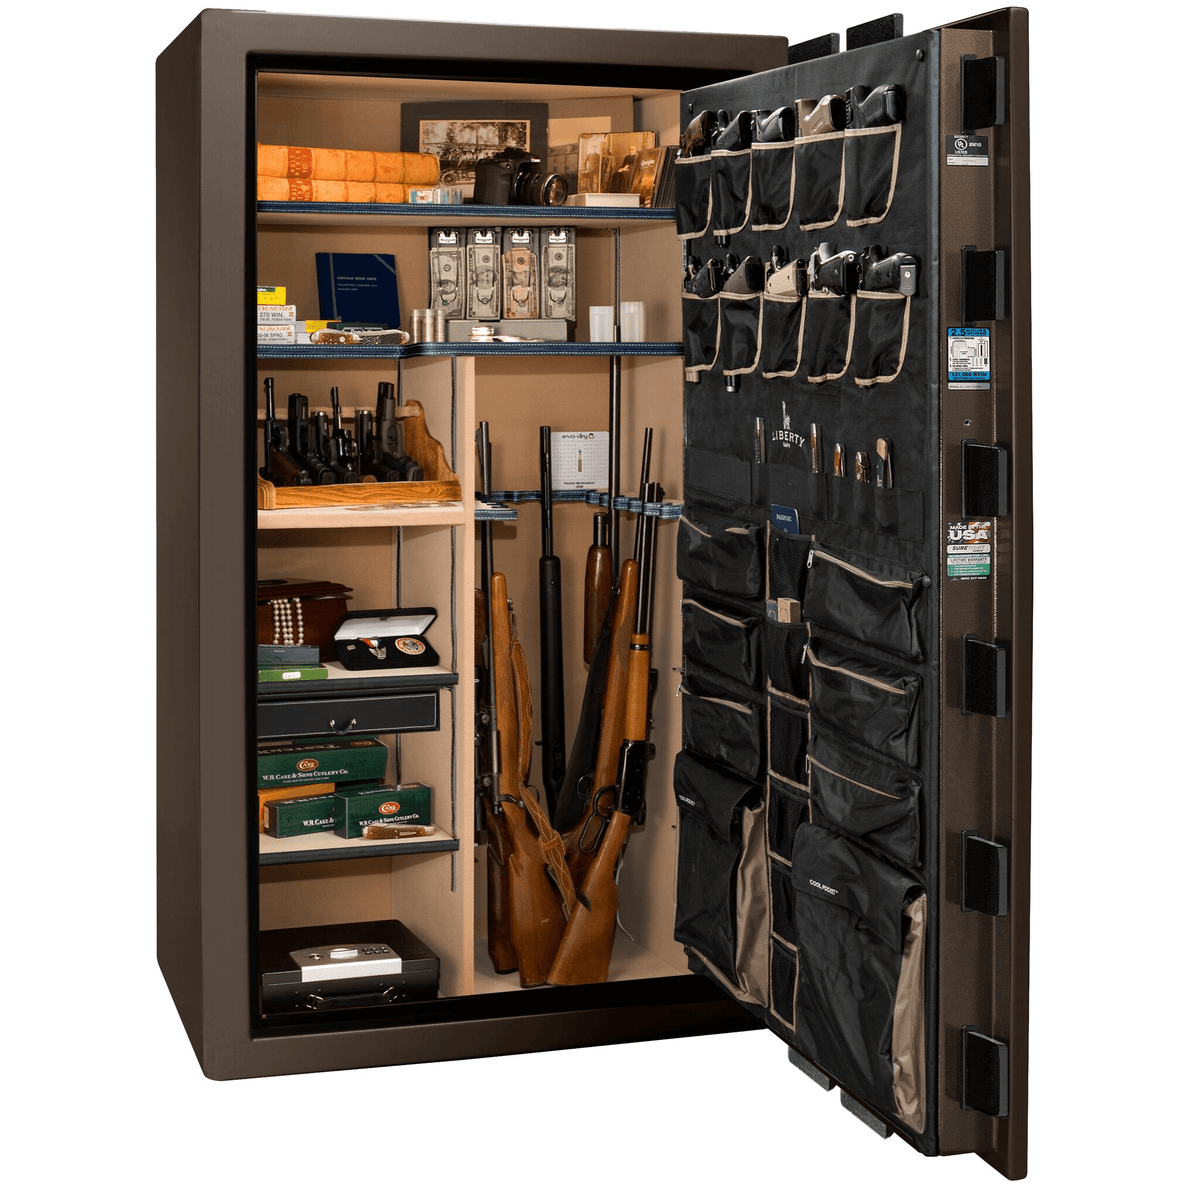 "Magnum | 50 | Level 8 Security | 150 Minute Fire Protection | Bronze Gloss | Black Electronic Lock | 72.5""(H) x 42""(W) x 32""(D)"